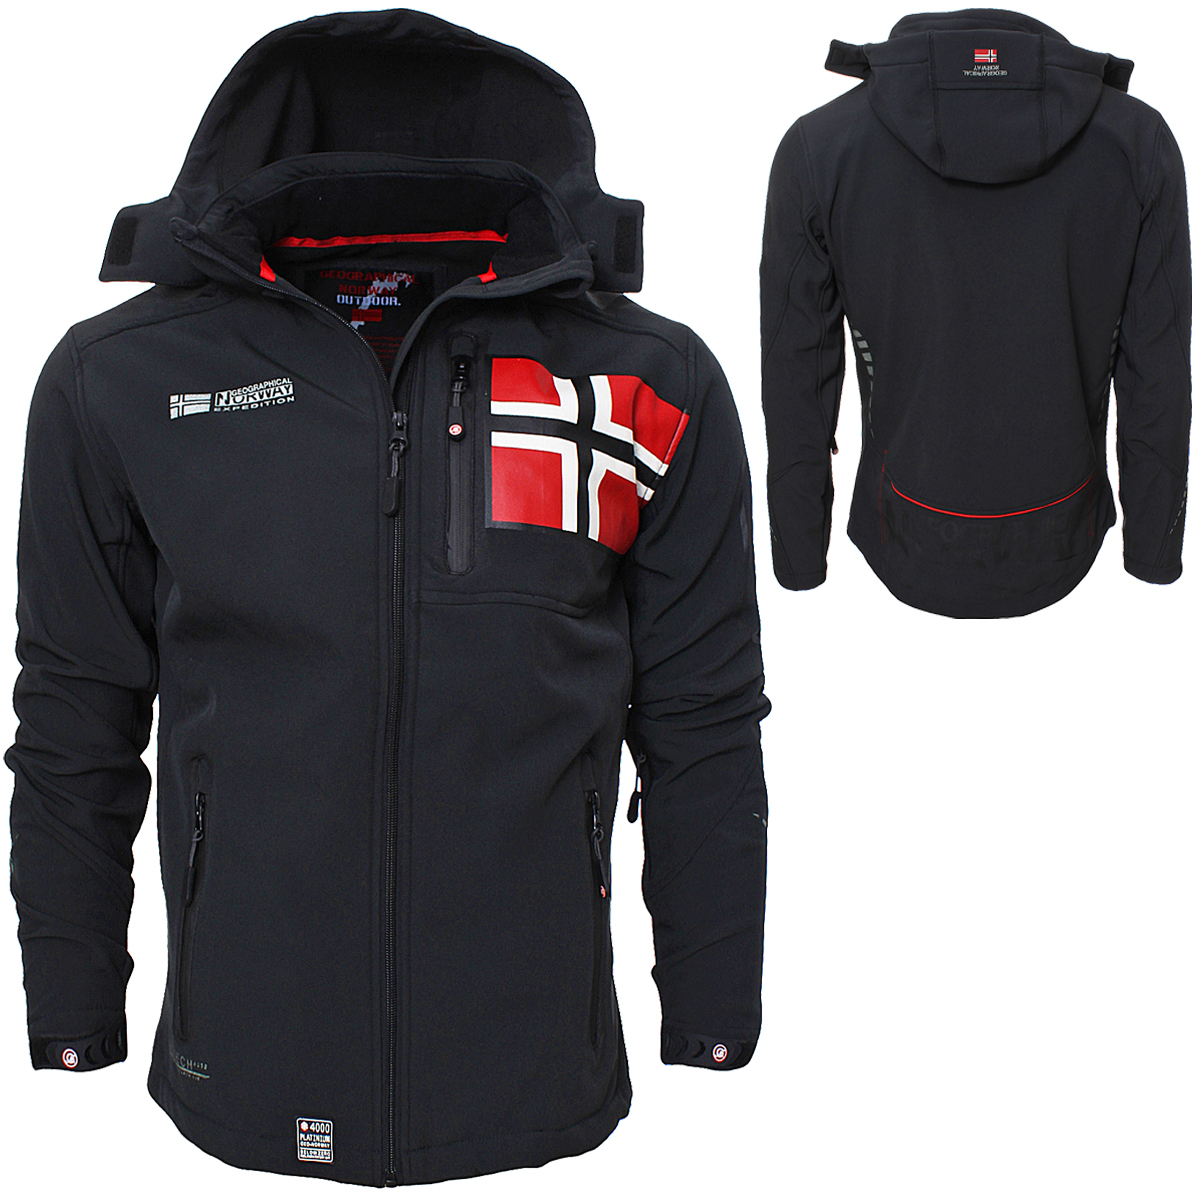 geographical norway rova men herren softshell jacke winterjacke s xxl ebay. Black Bedroom Furniture Sets. Home Design Ideas